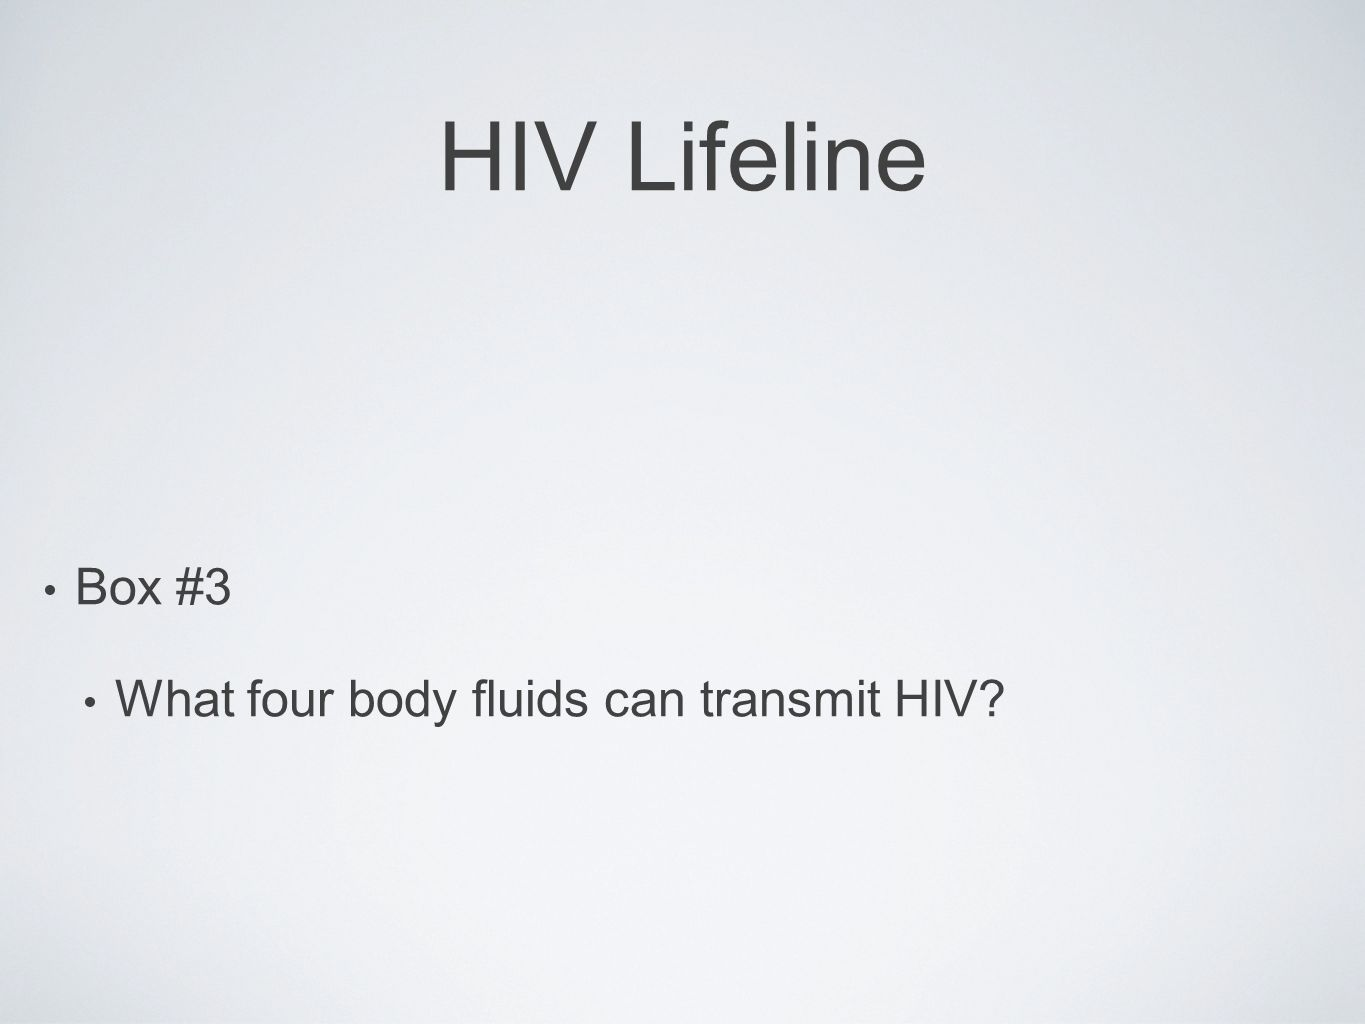 HIV Lifeline Box #3 What four body fluids can transmit HIV